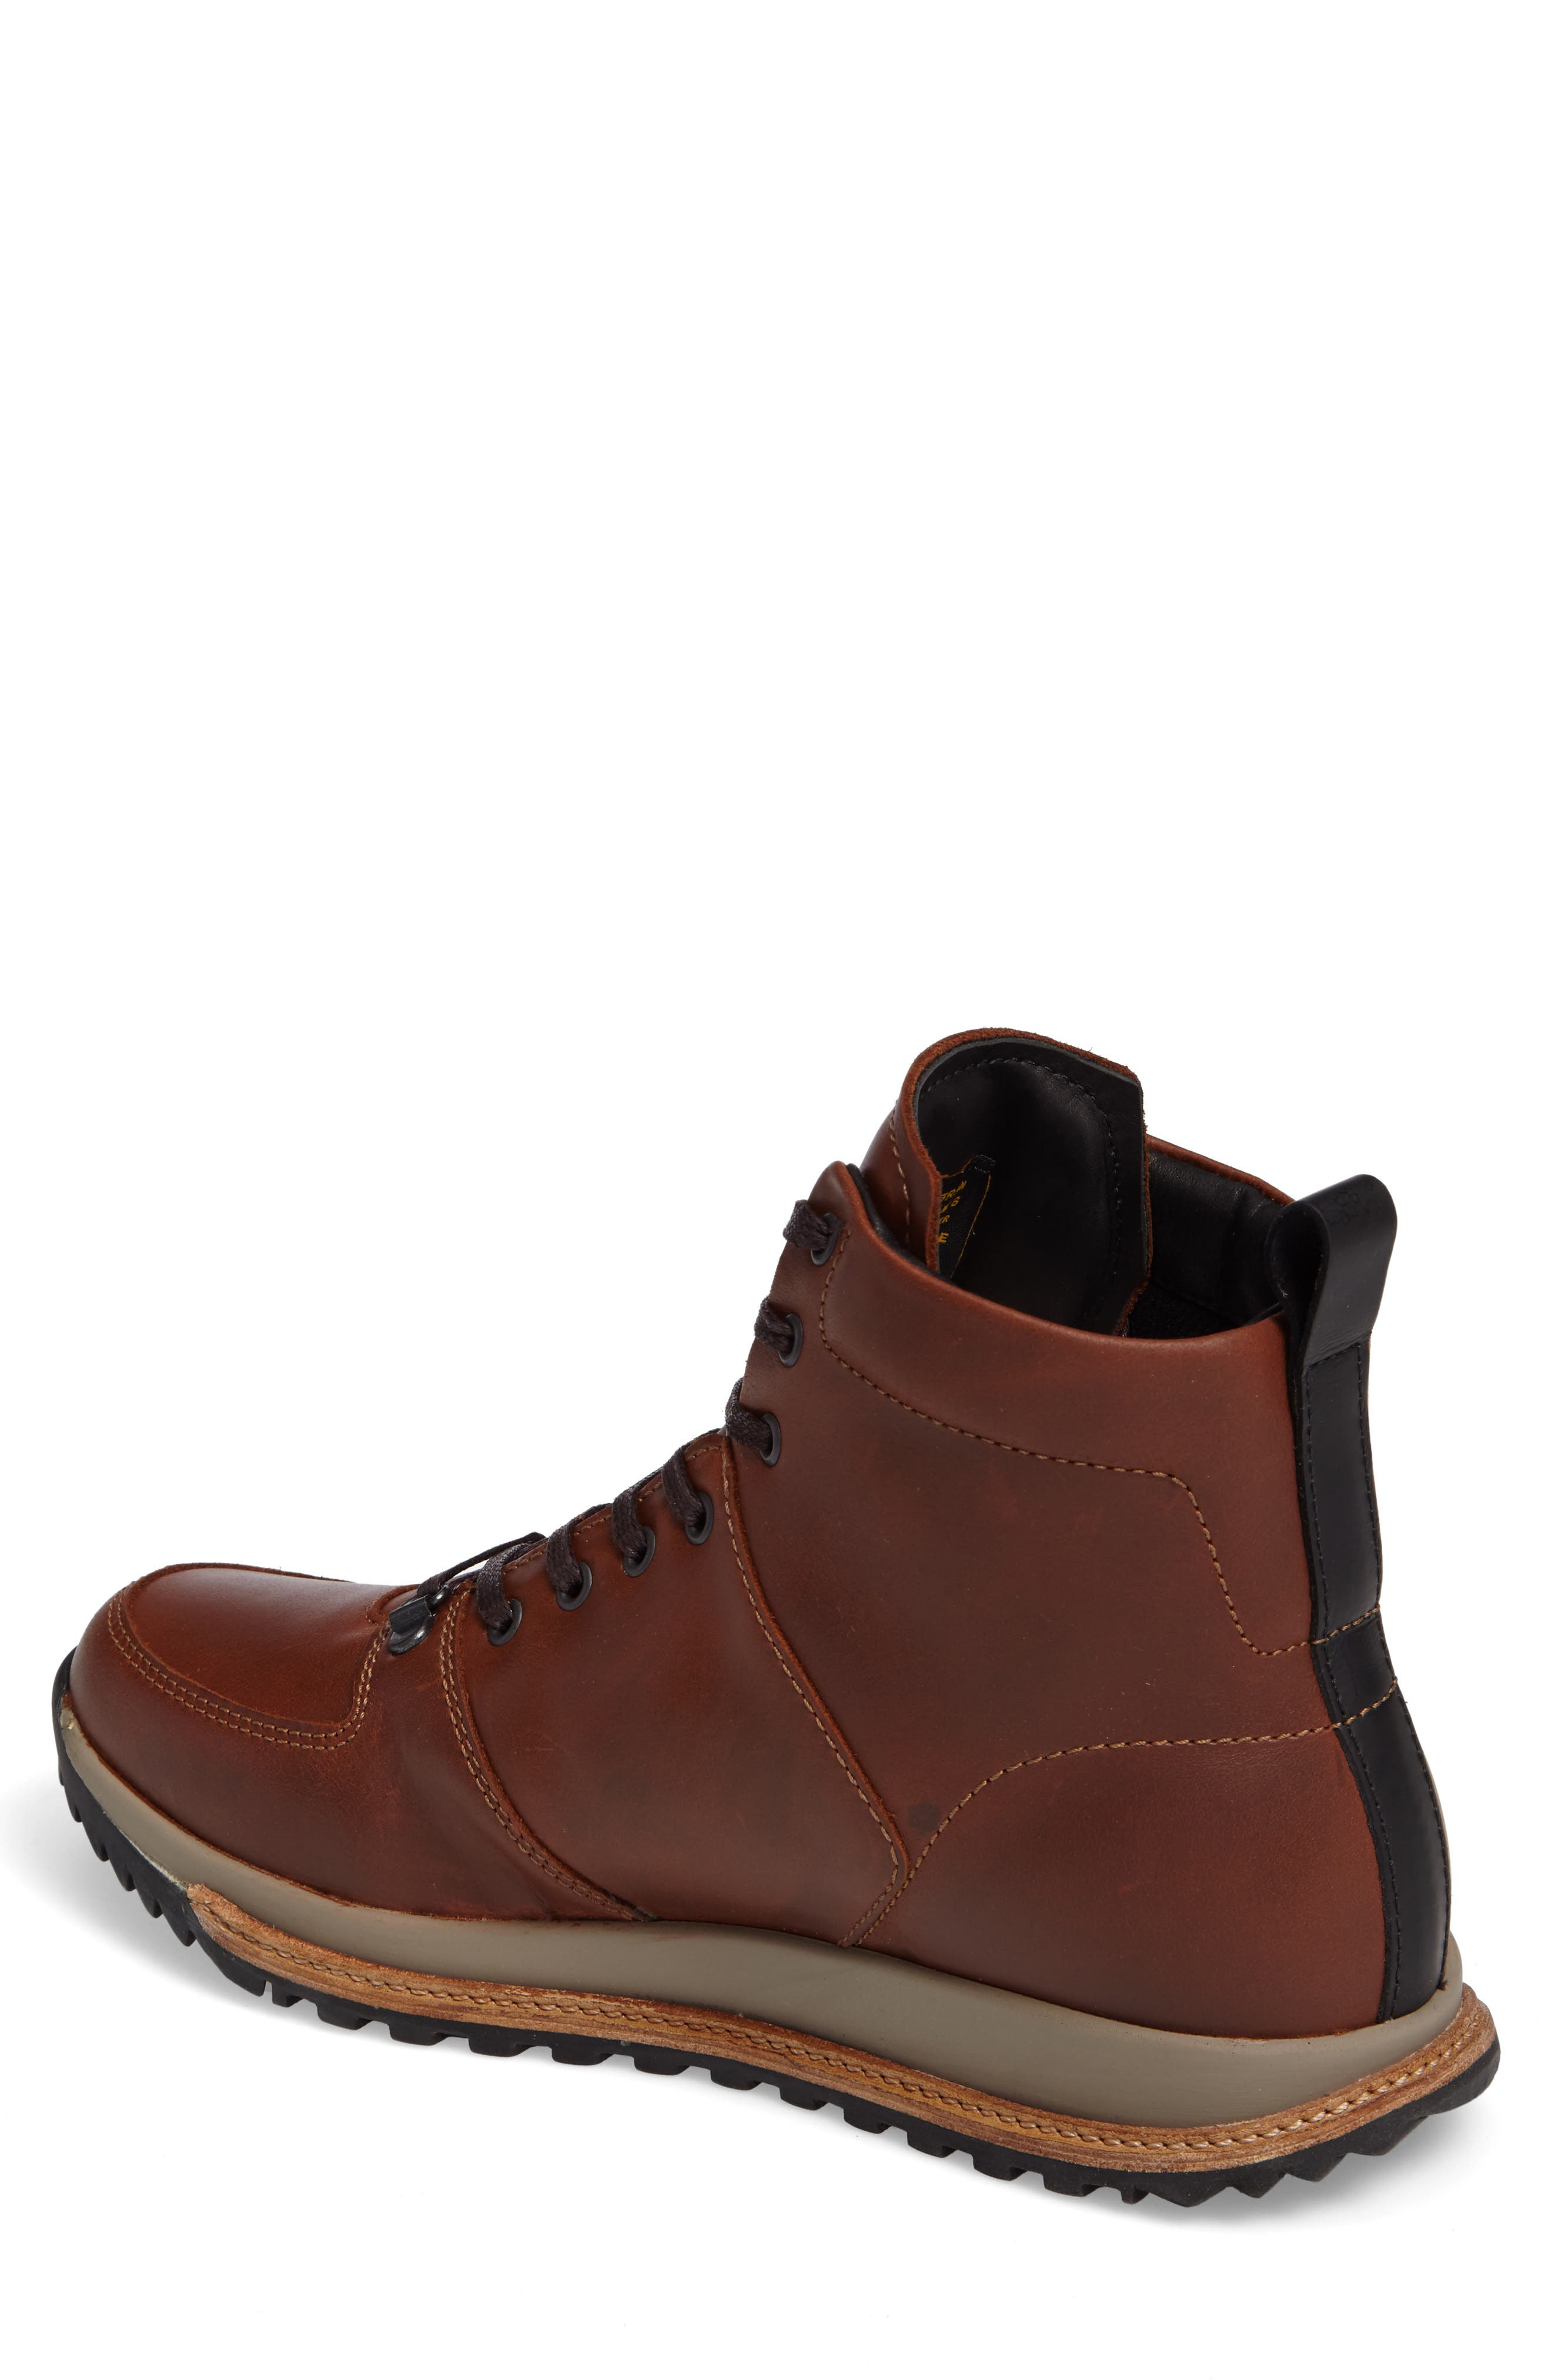 Concord Mid Top Wool Cuffed Waterproof Boot,                             Alternate thumbnail 2, color,                             Seahorse Leather